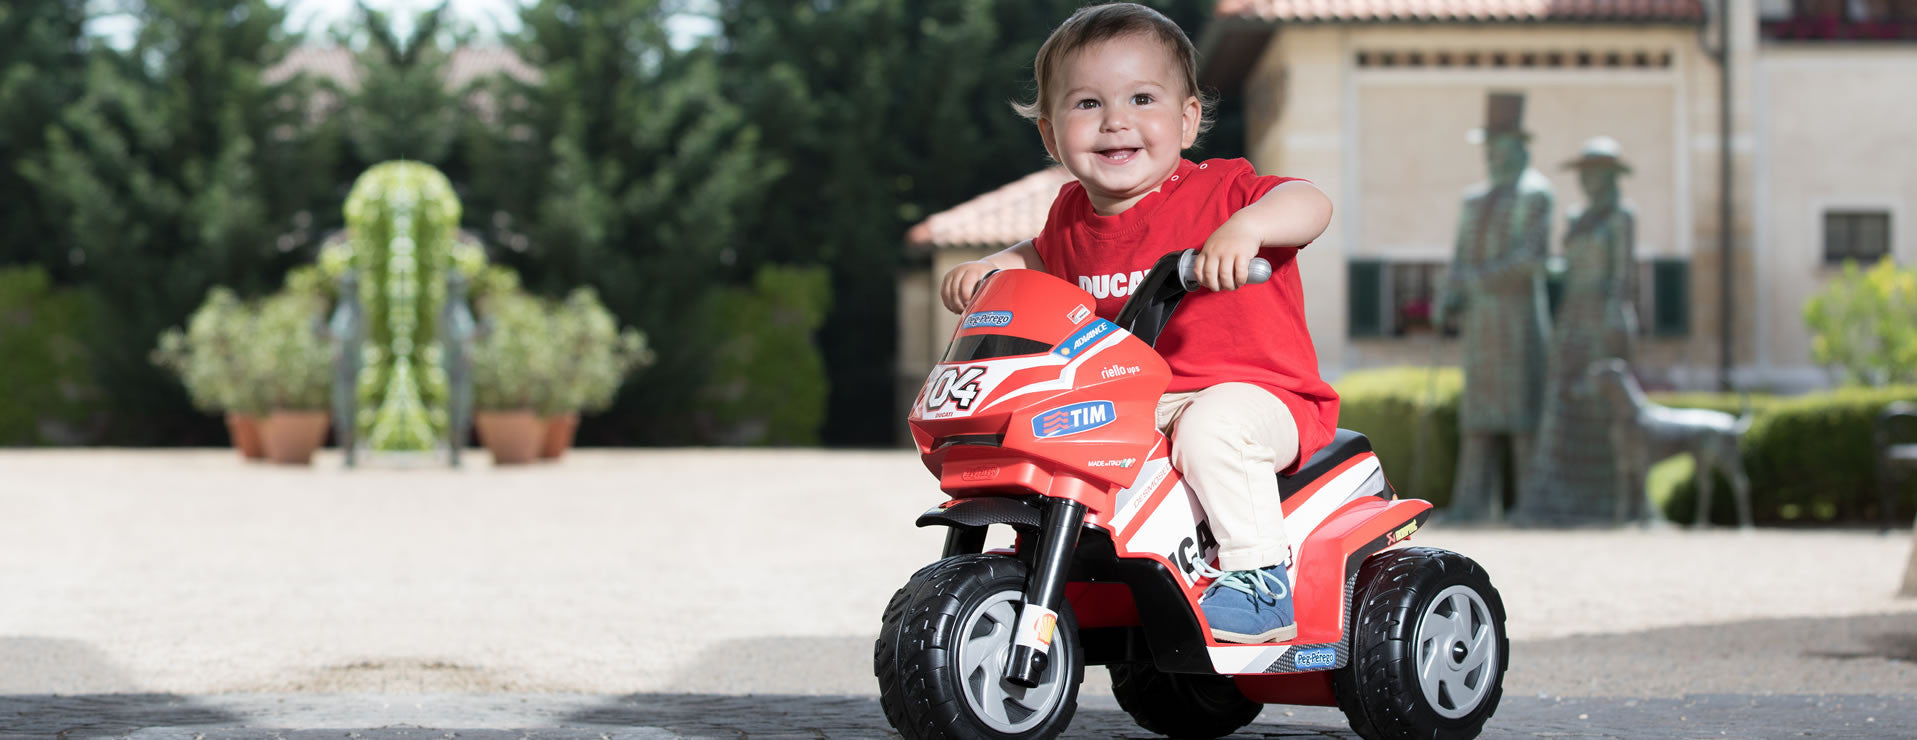 Peg Perego Mini Ducati 6v Electric Ride-on Motorbike